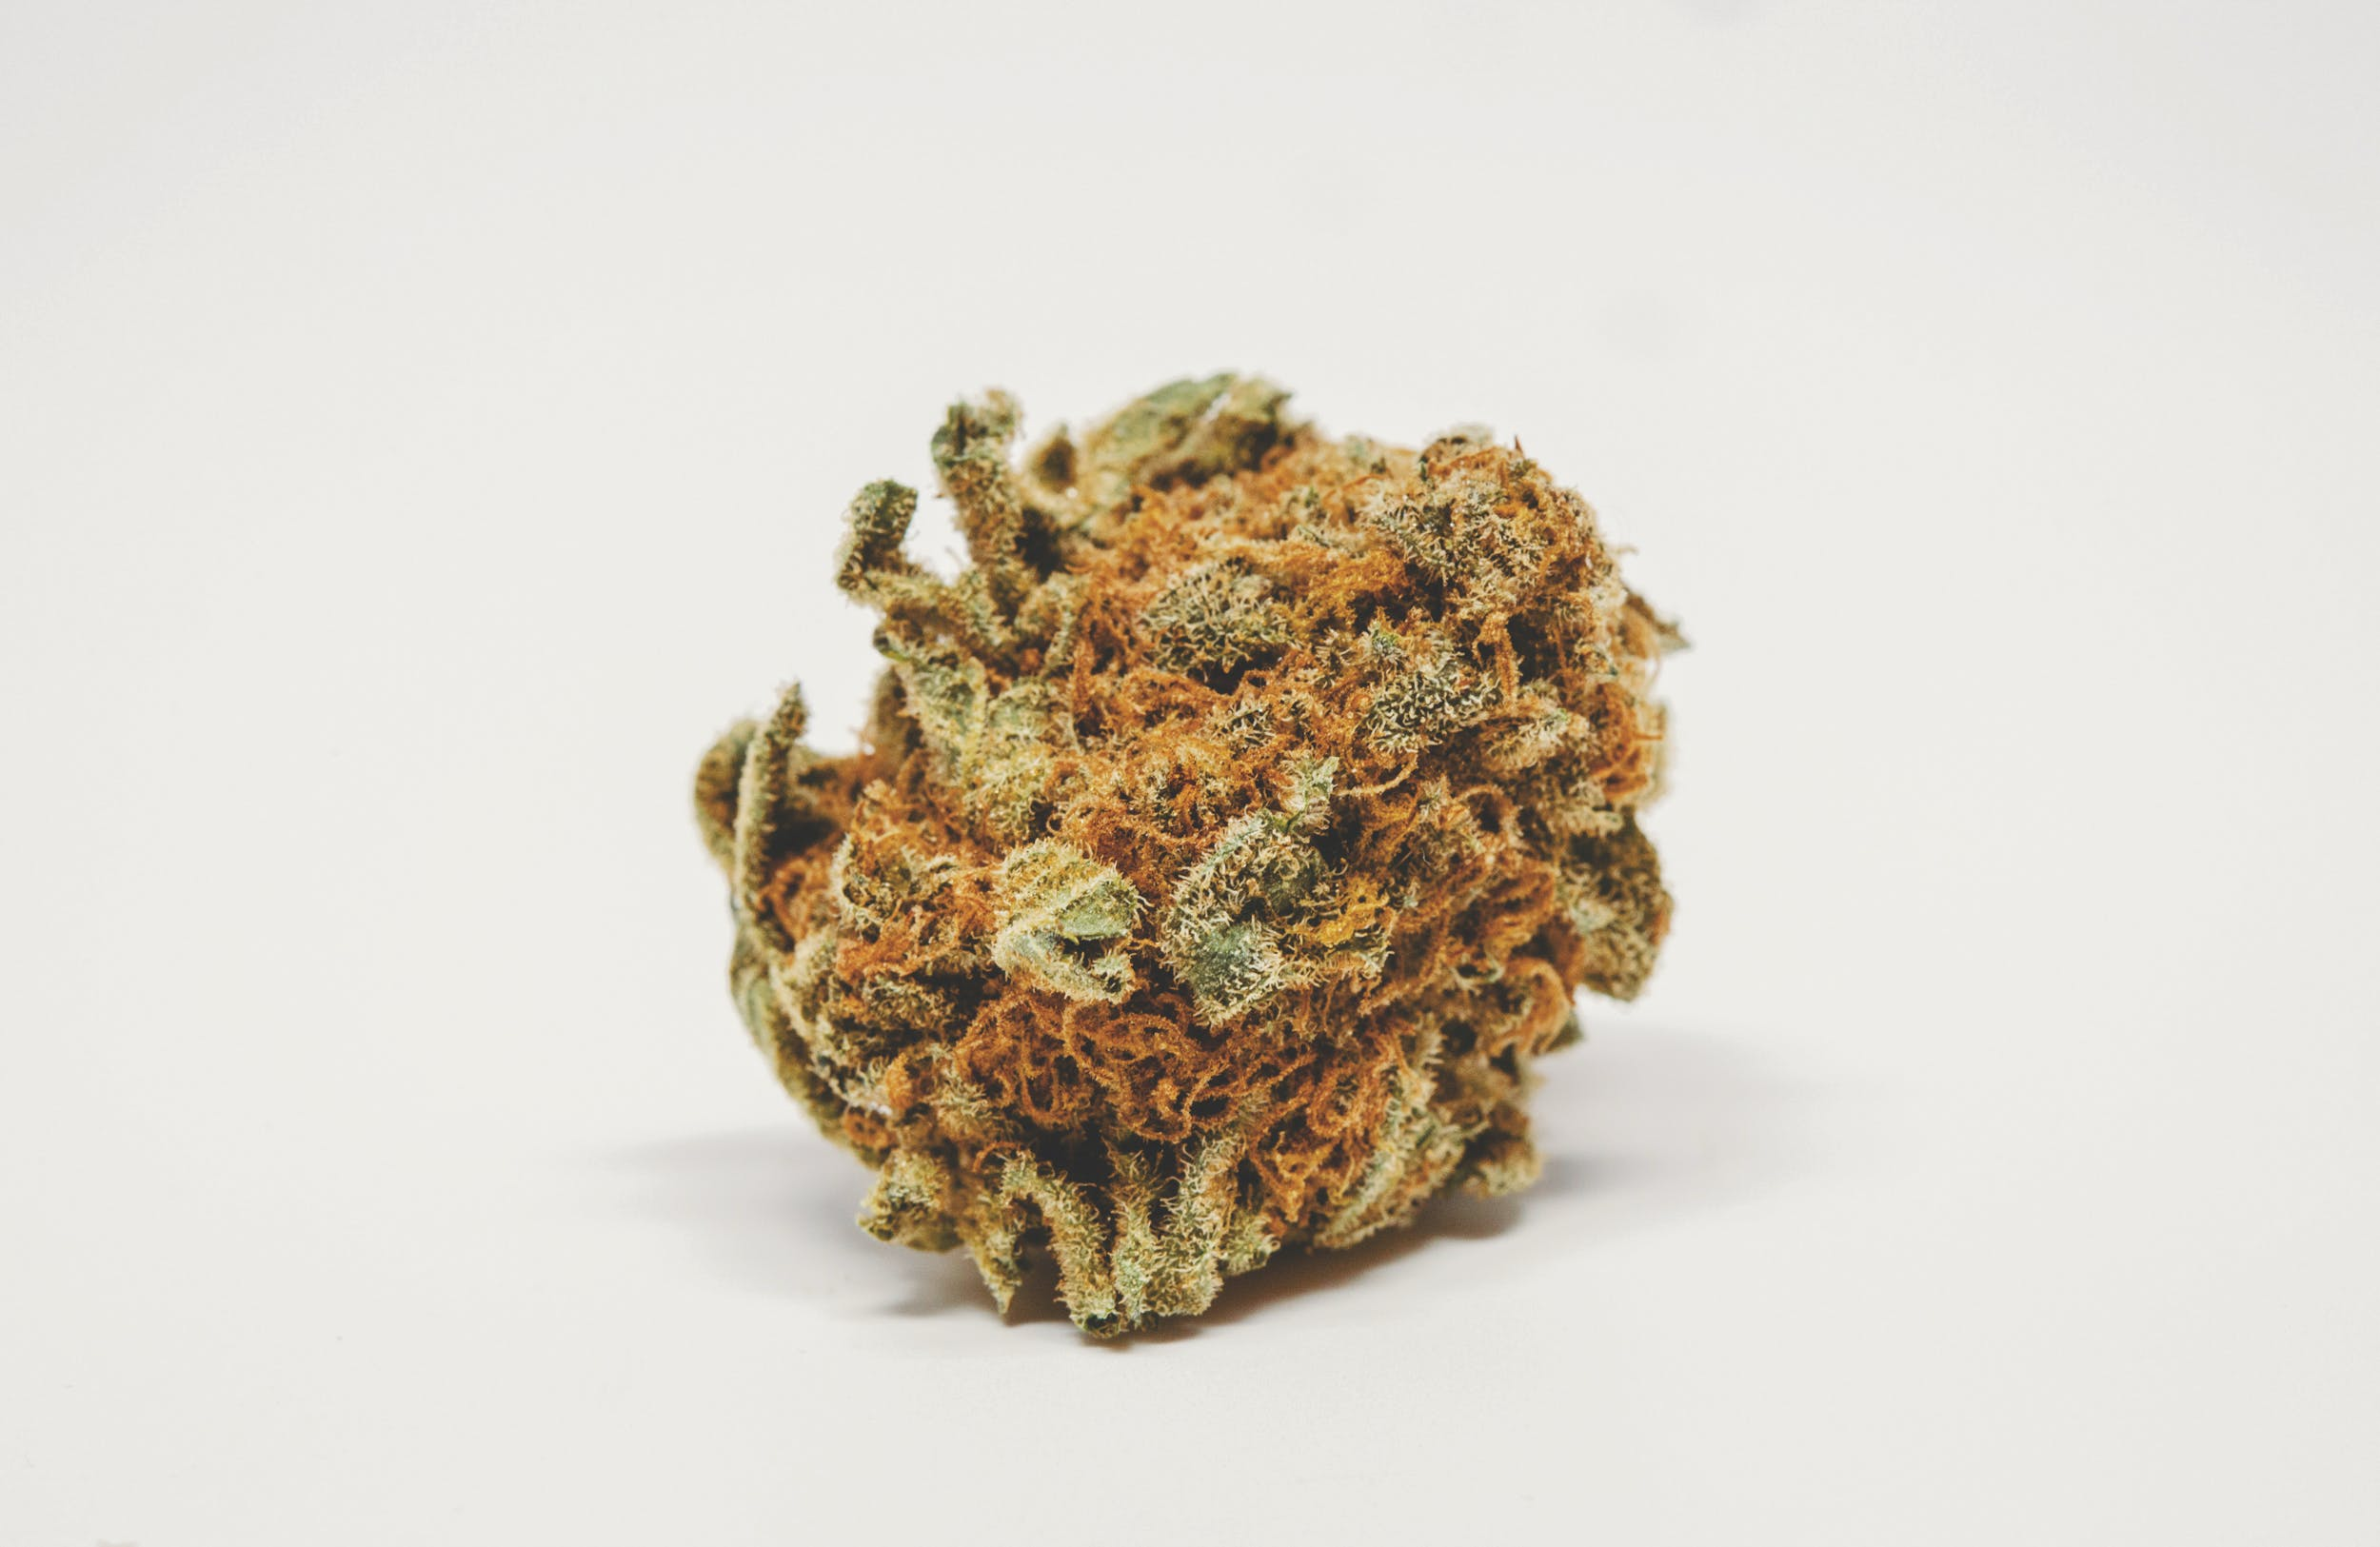 Best Kush Strains 7 These are the Best Kush Strains on the Planet